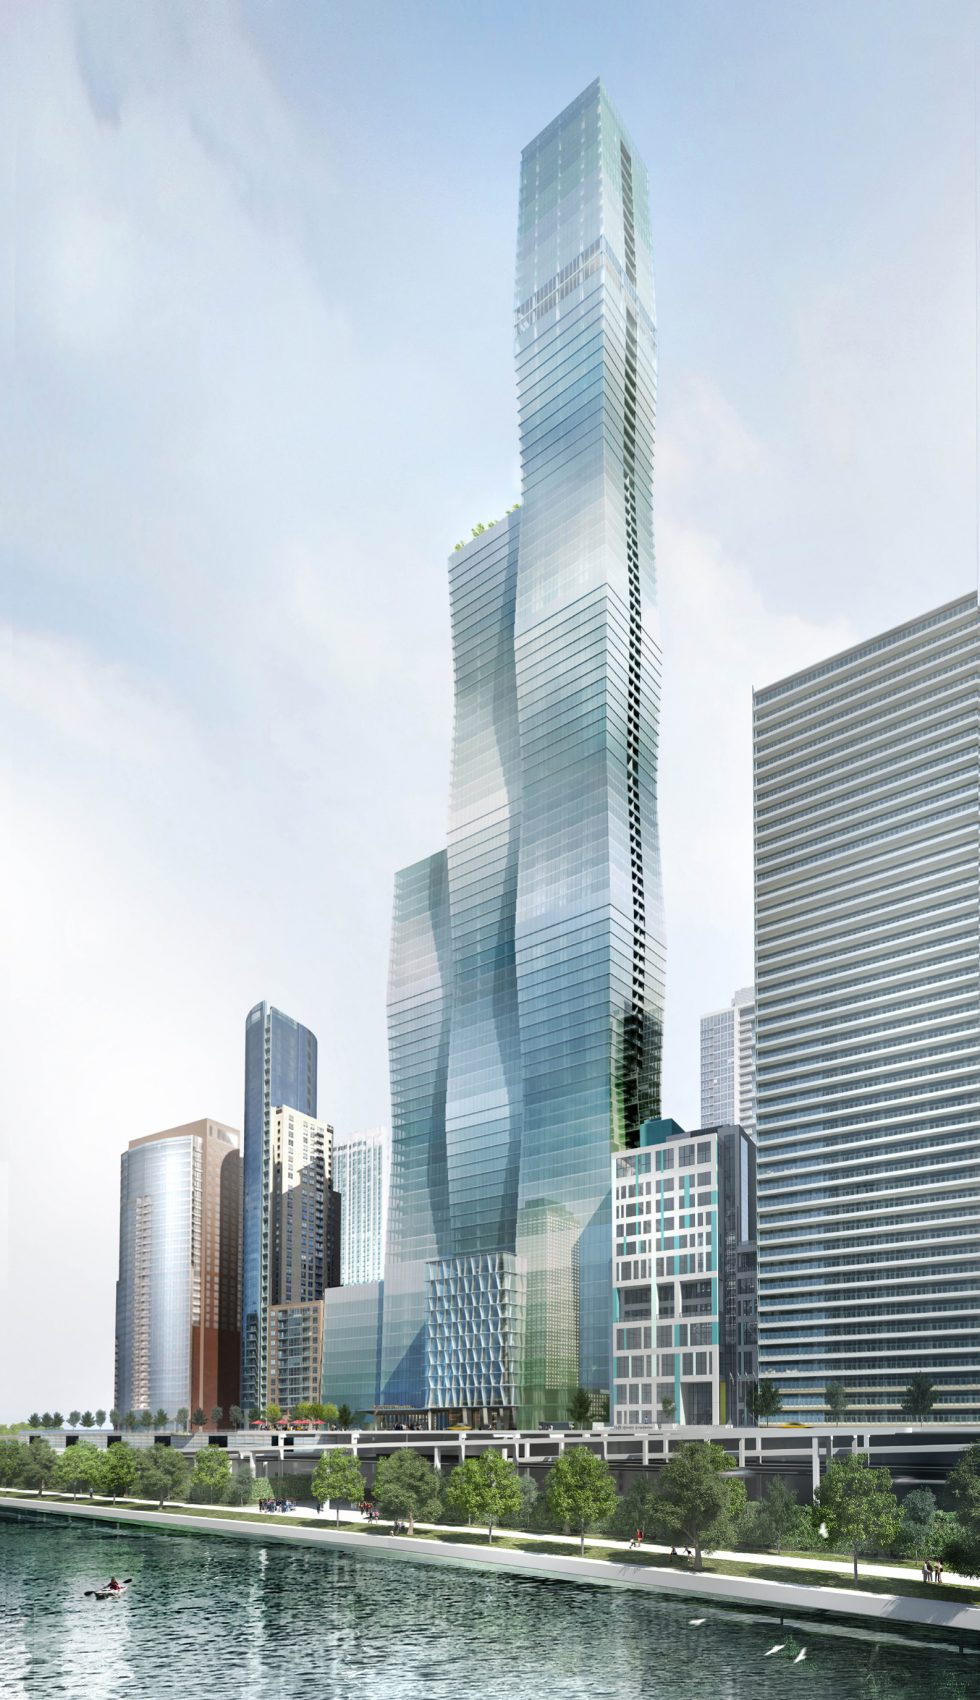 A rendering of the Vista Tower in Chicago. (Courtesy Studio Gang).